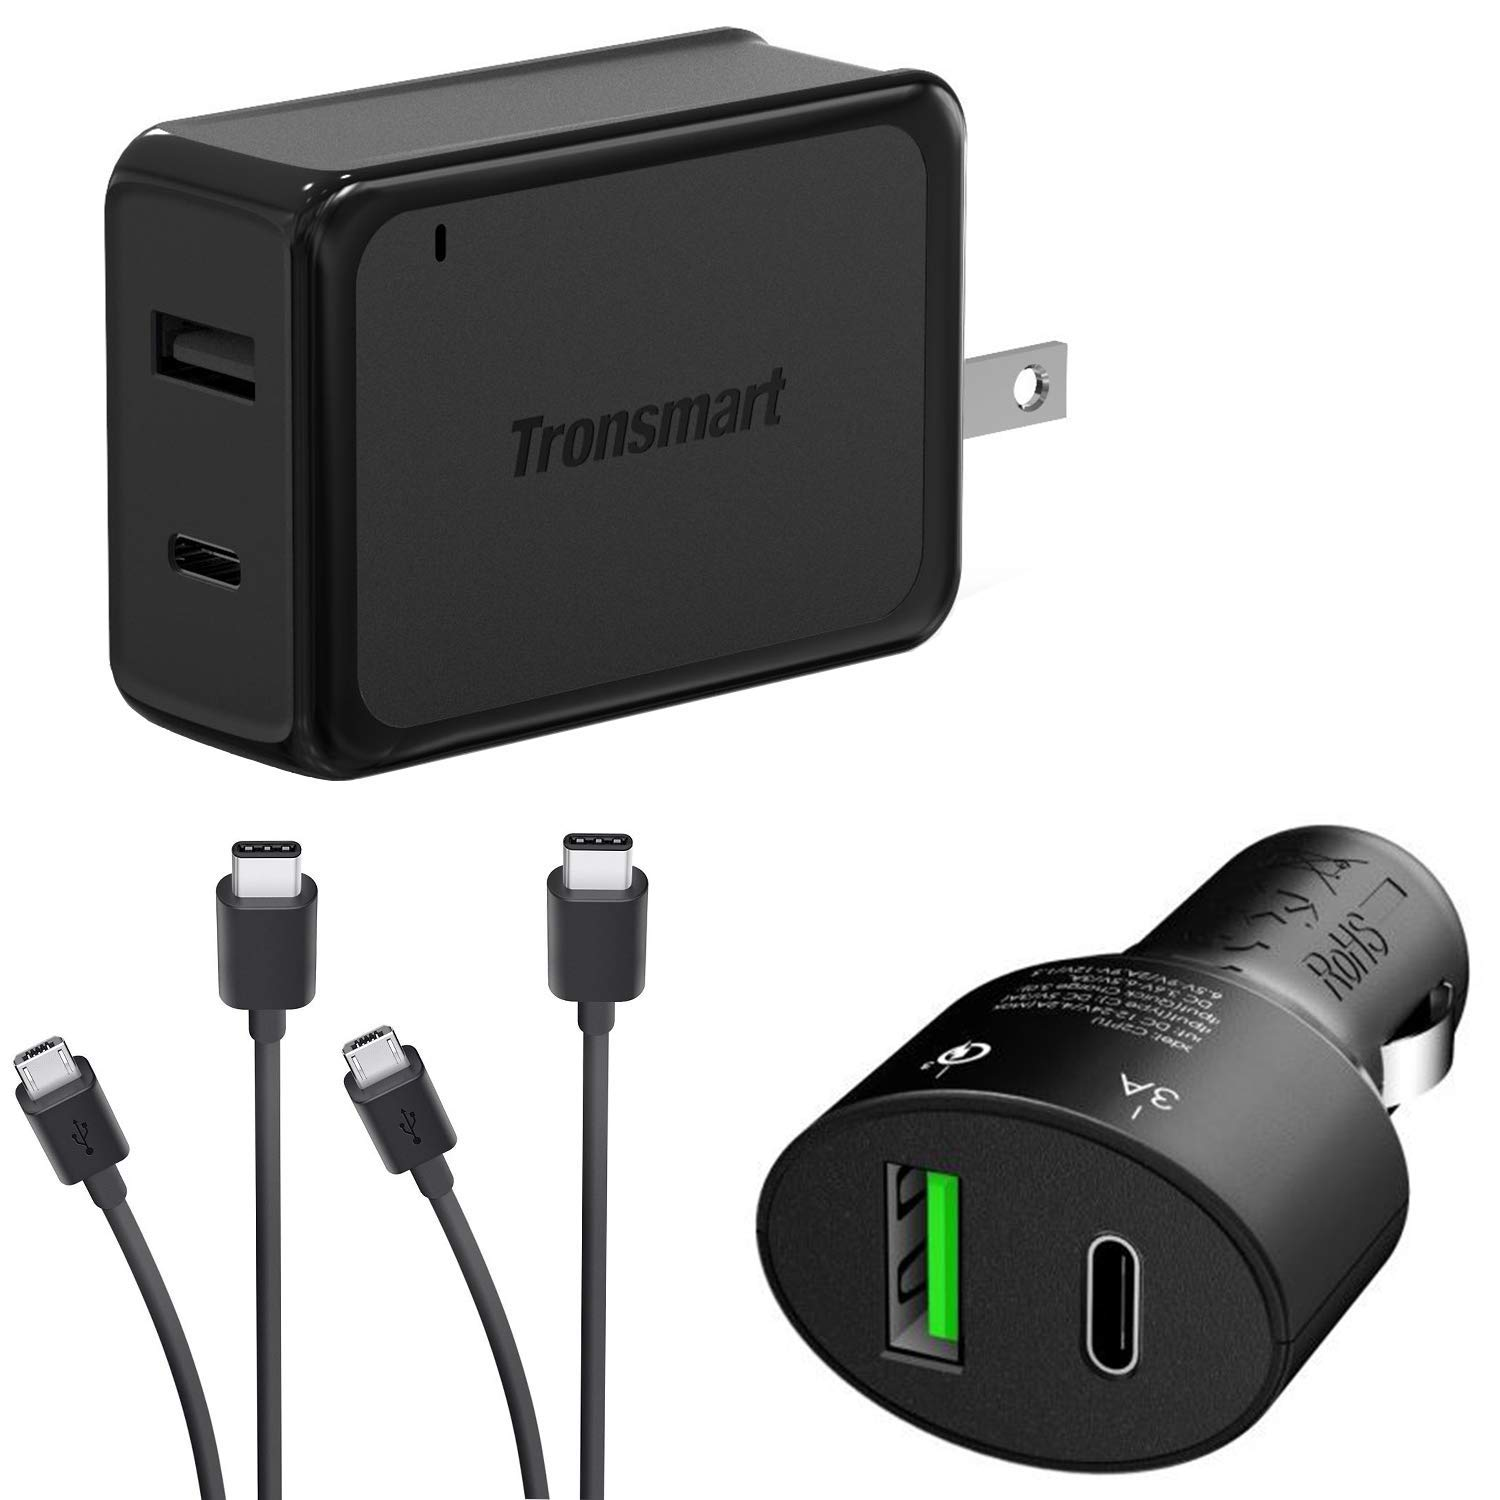 Turbo Quick Wall and Car Charger Kit for Asus Transformer Book T100 Chi with MicroUSB & USB Type-C Cables! (33Watts) by Accessory for Asus Transformer Book T100 Chi